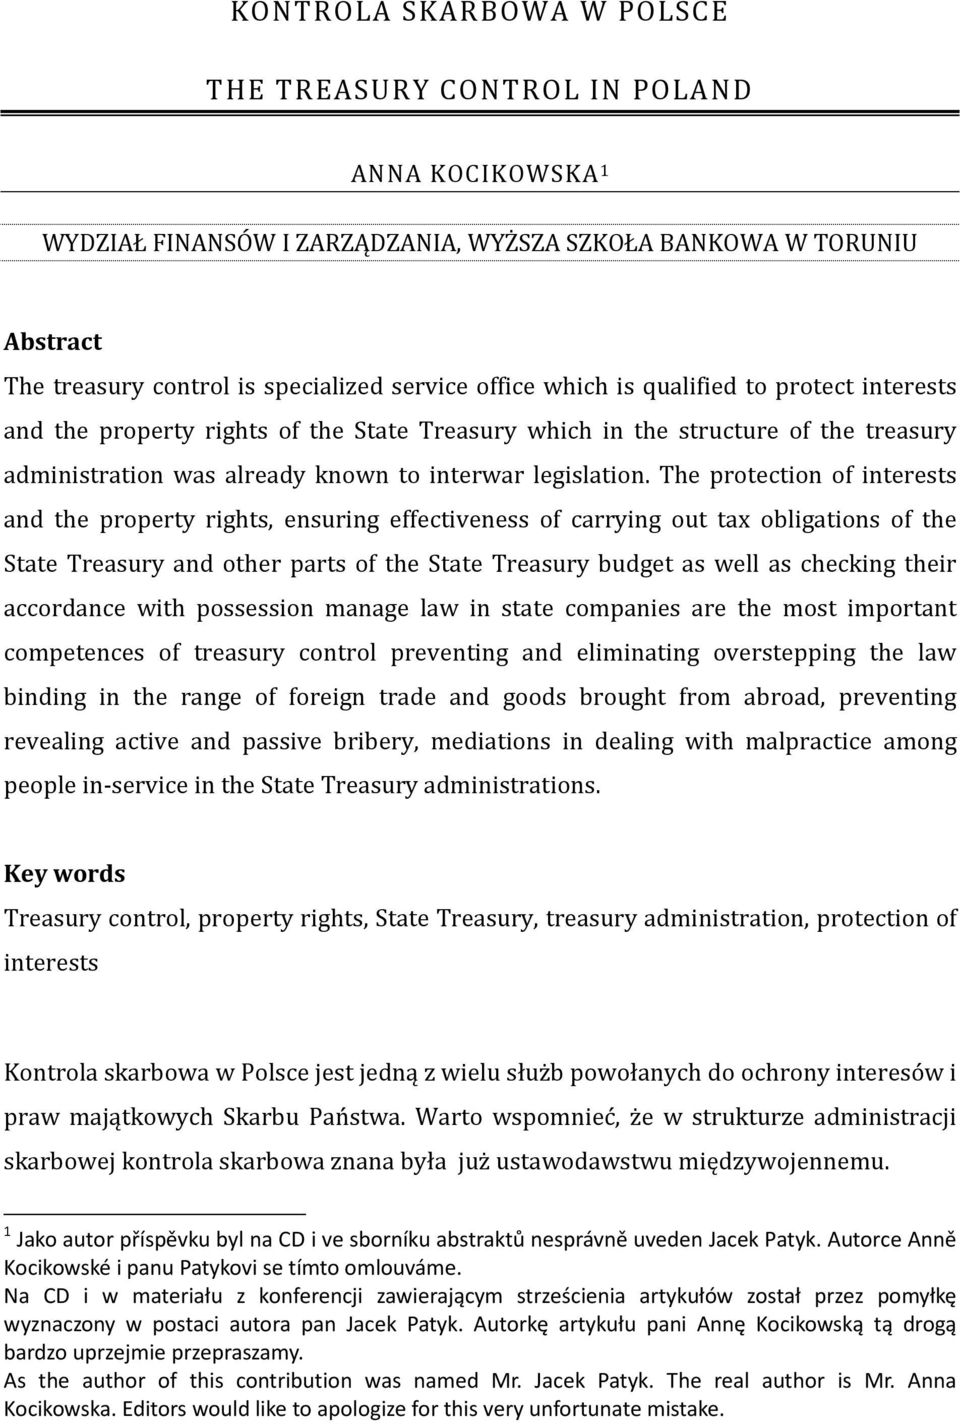 The protection of interests and the property rights, ensuring effectiveness of carrying out tax obligations of the State Treasury and other parts of the State Treasury budget as well as checking